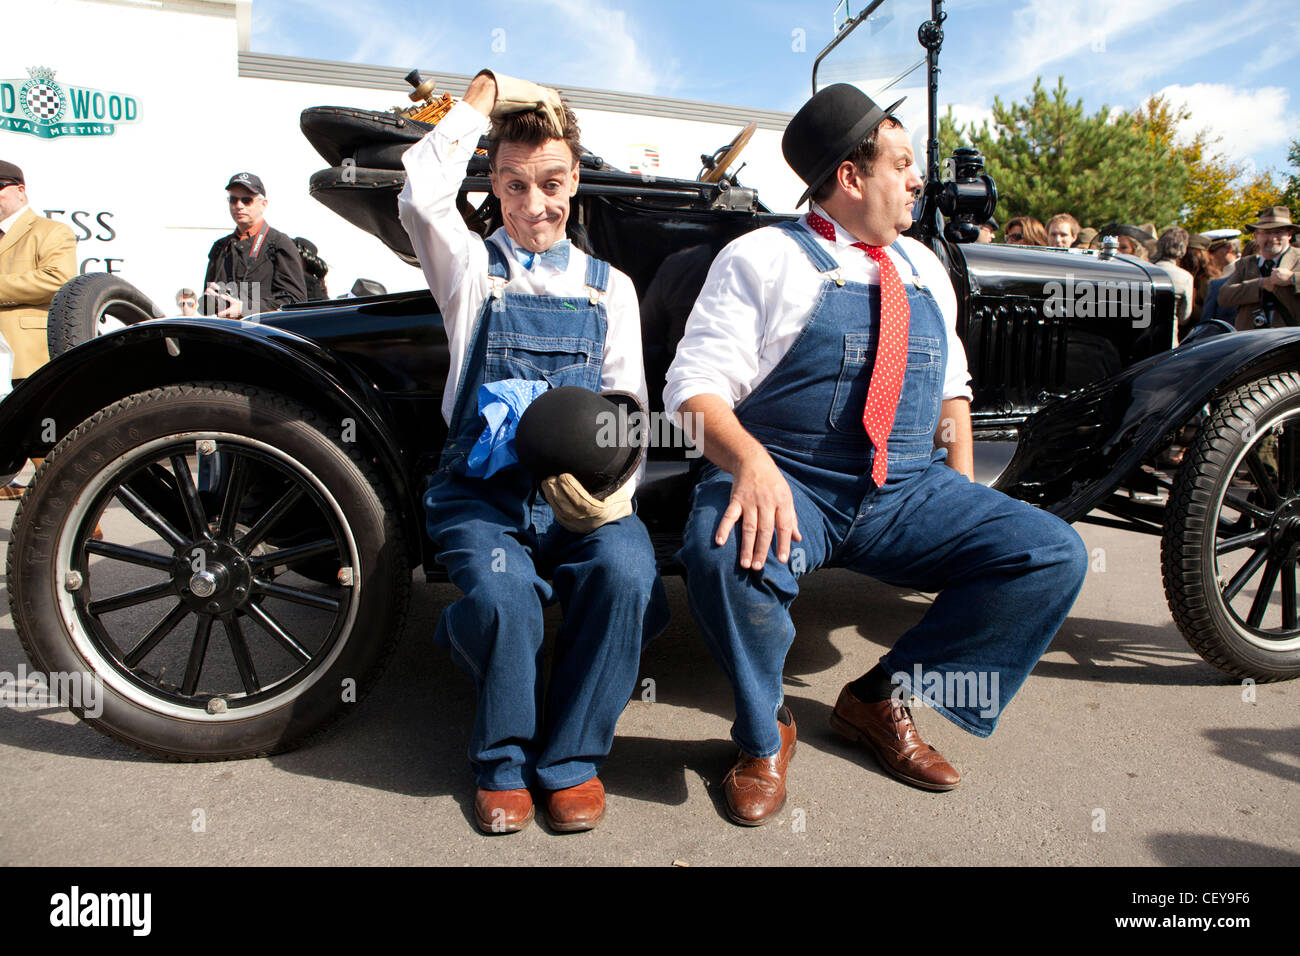 Laurel and Hardy looka likes perform for a crowd at Goodwood revival - Stock Image